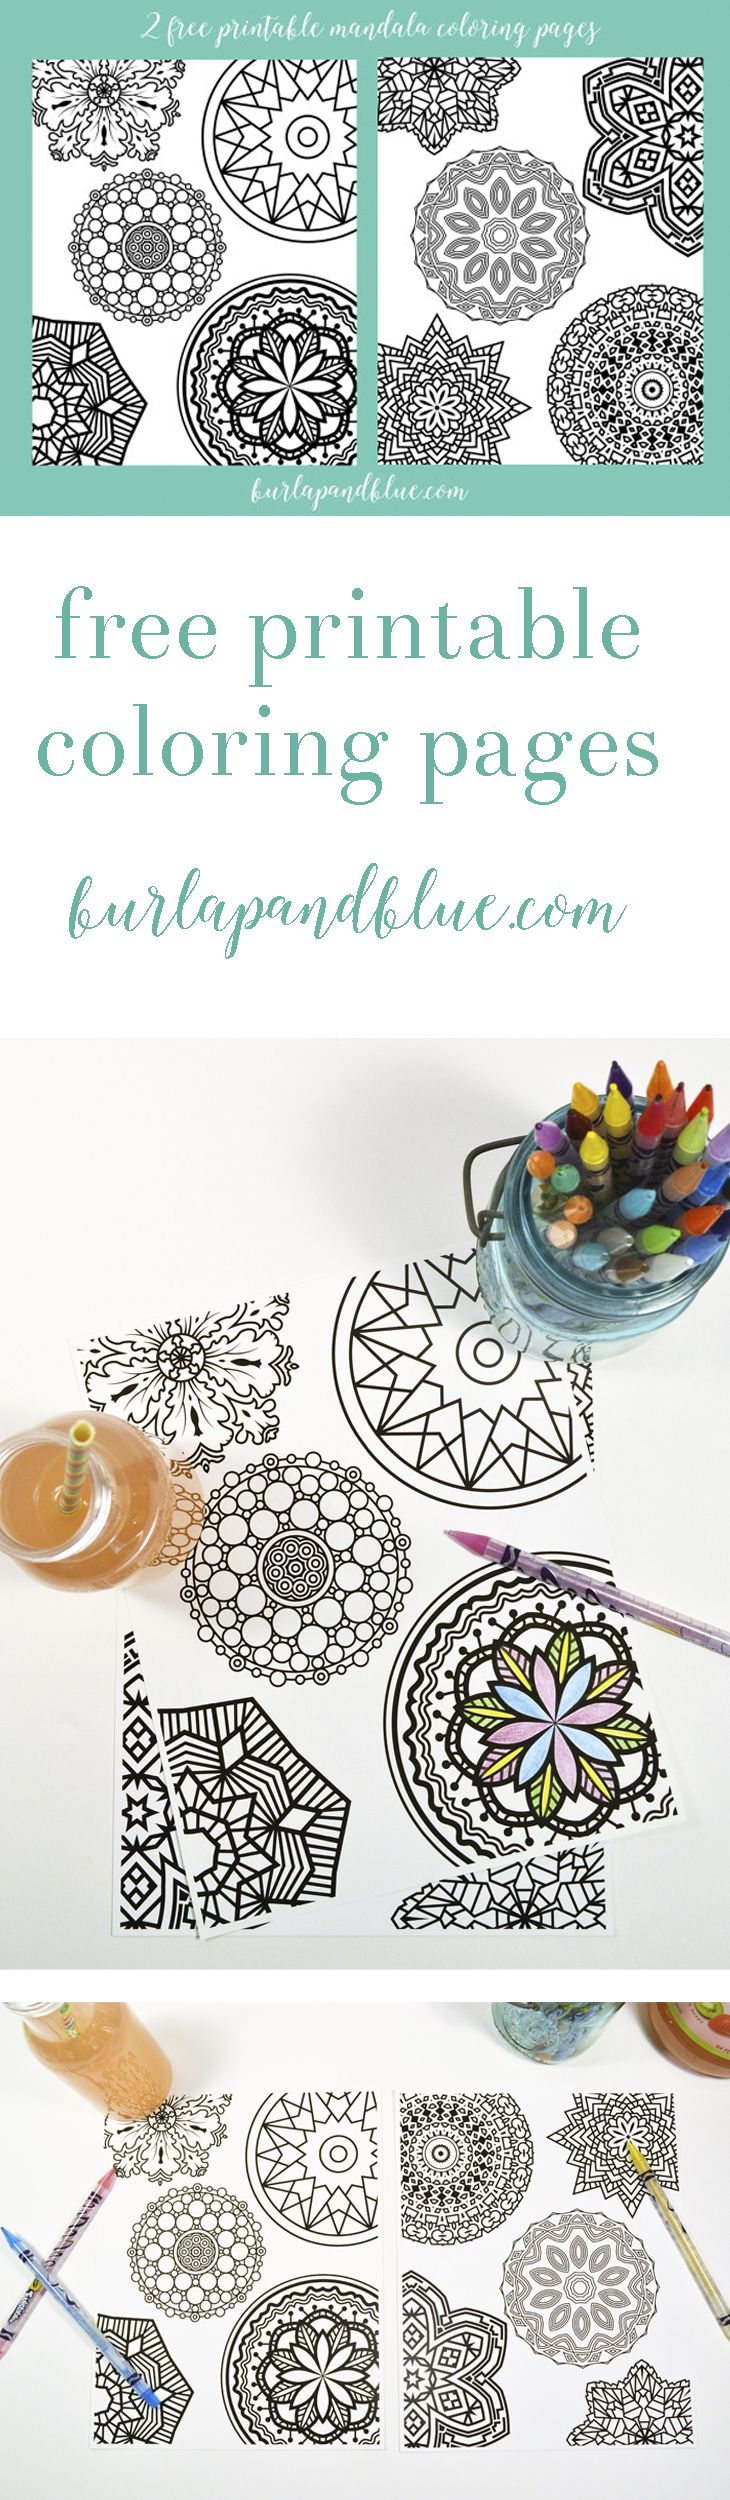 Free mandala coloring pages free mandala coloring pages 54 - Free Mandala Printable Coloring Pages Taking A Mental Break With Coloring Snapple